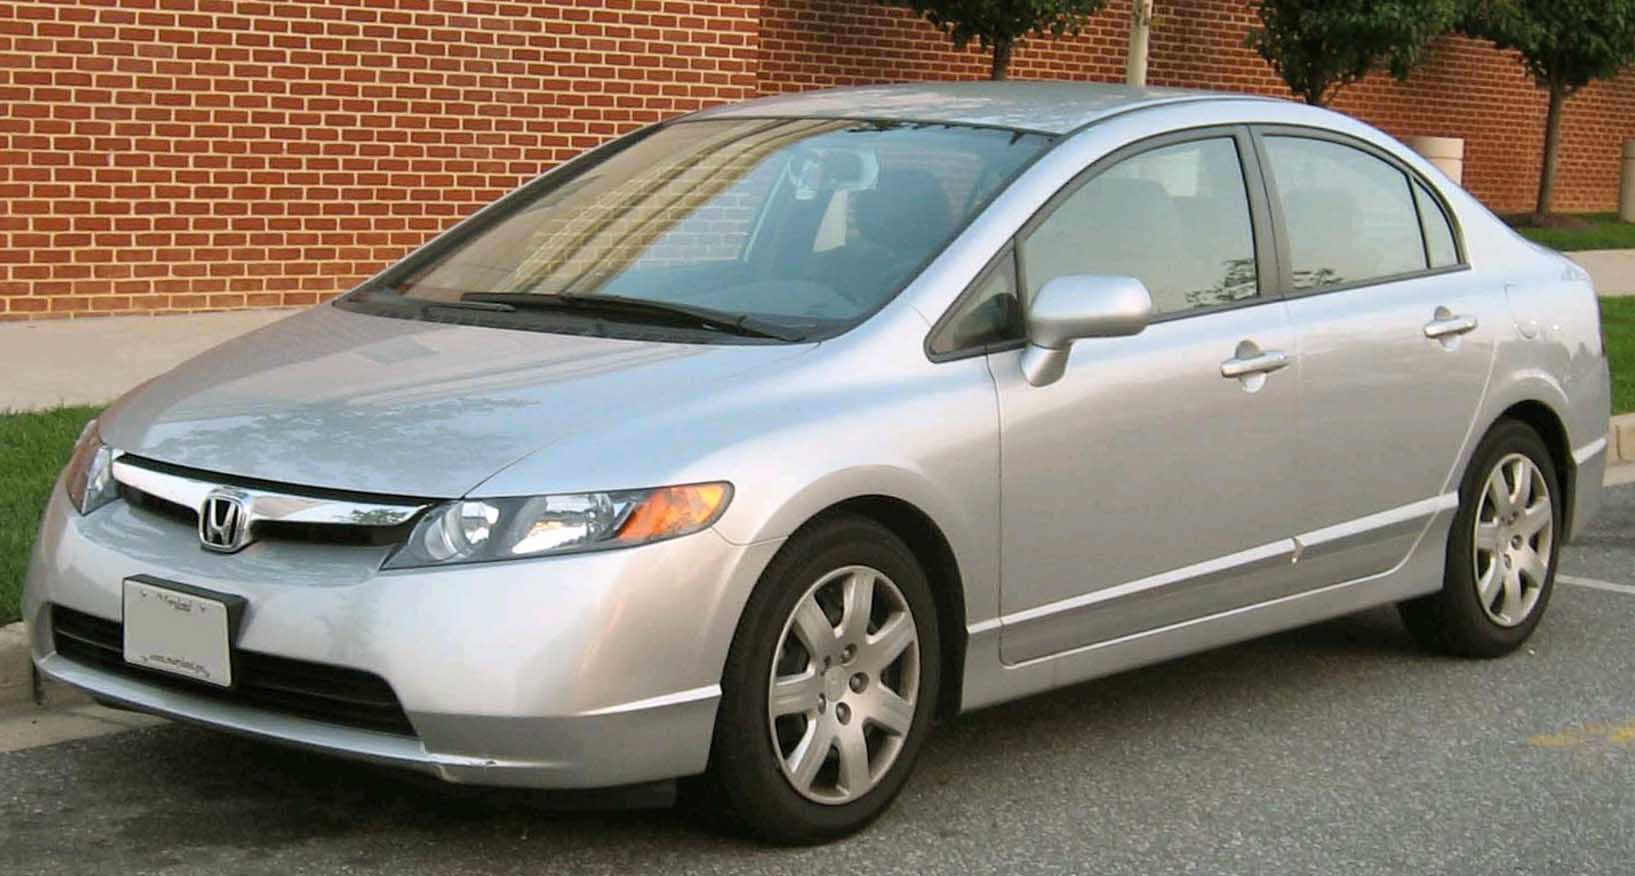 Pictures of honda civic #2